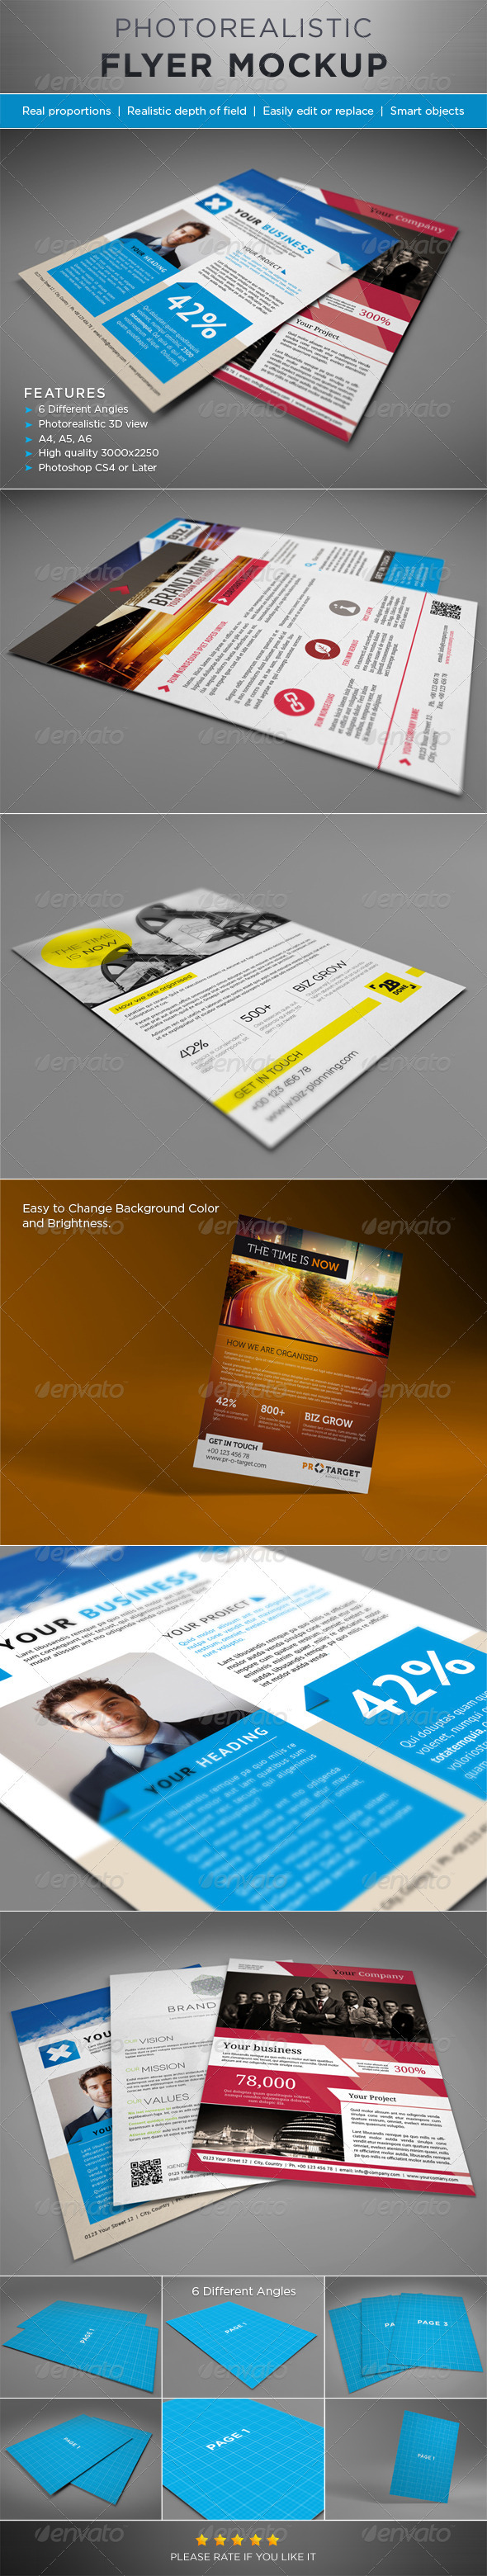 Photorealistic Flyer Mock-ups - Flyers Print